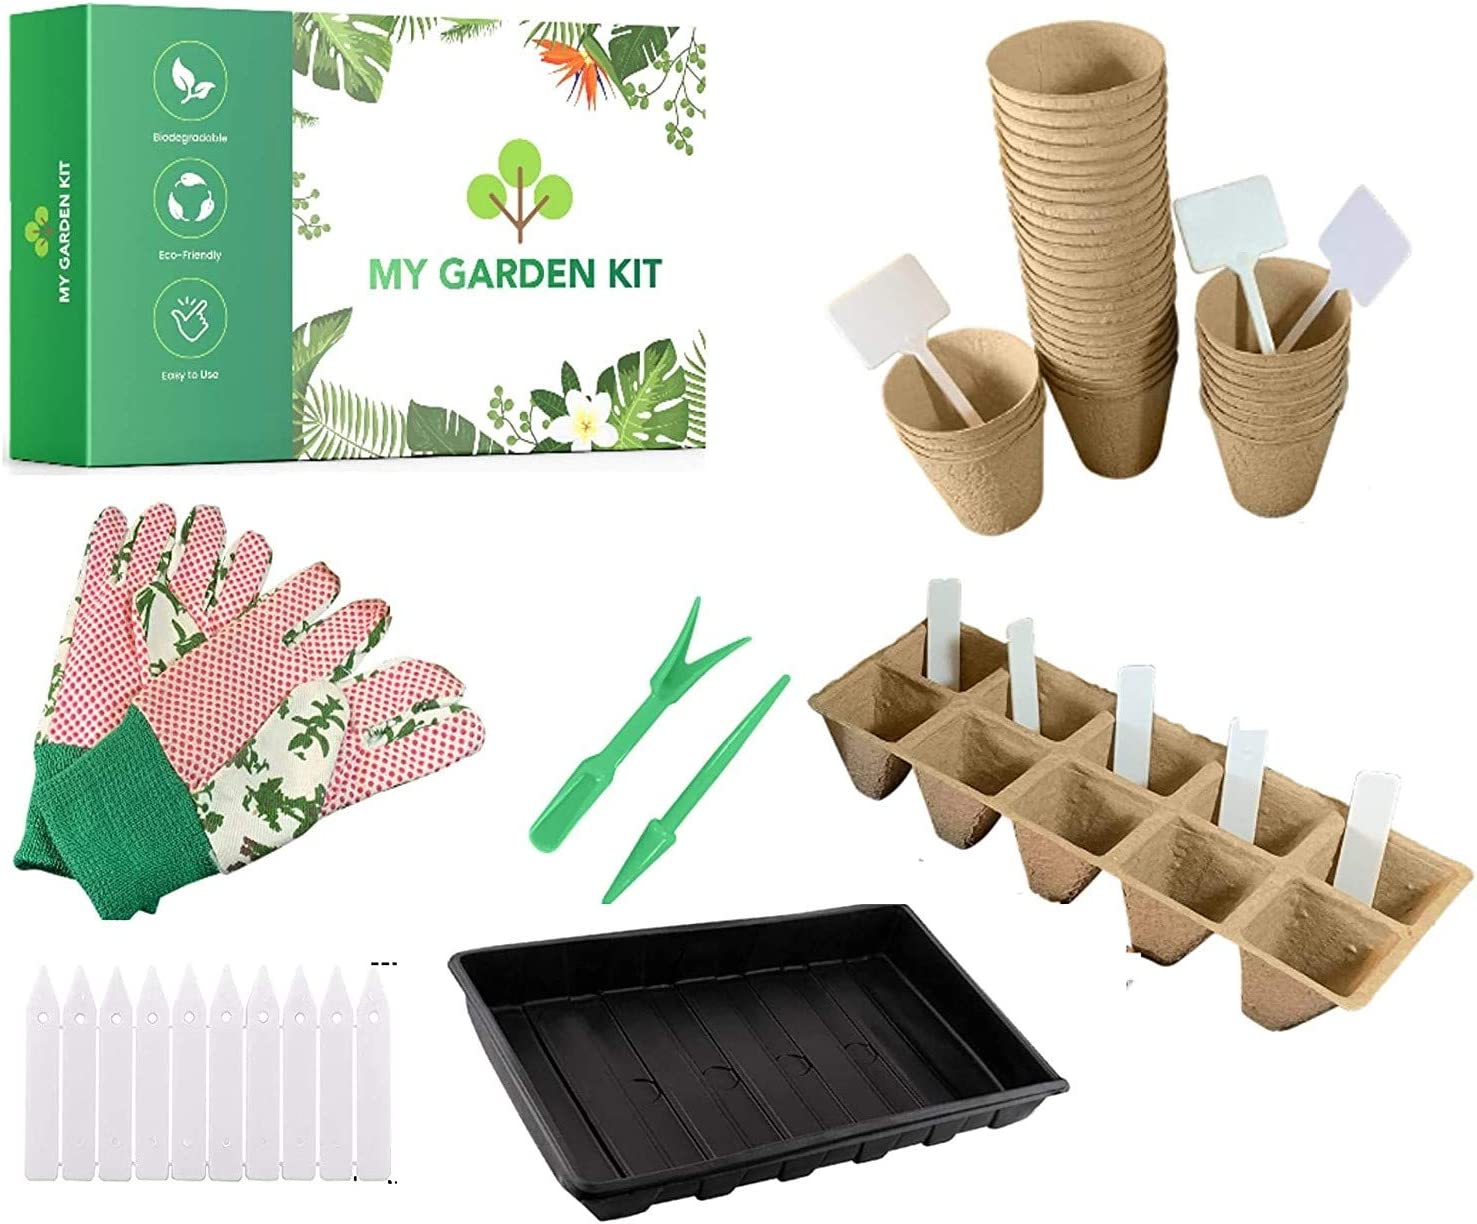 Seed Starter - 40 Peat Pots a Perfect Seed Starter Peat Pots Kit Organic Plant Starter for Flowers, Vegetable Indoor and Outdoor Gardening, Germination Tray and Nursery pots